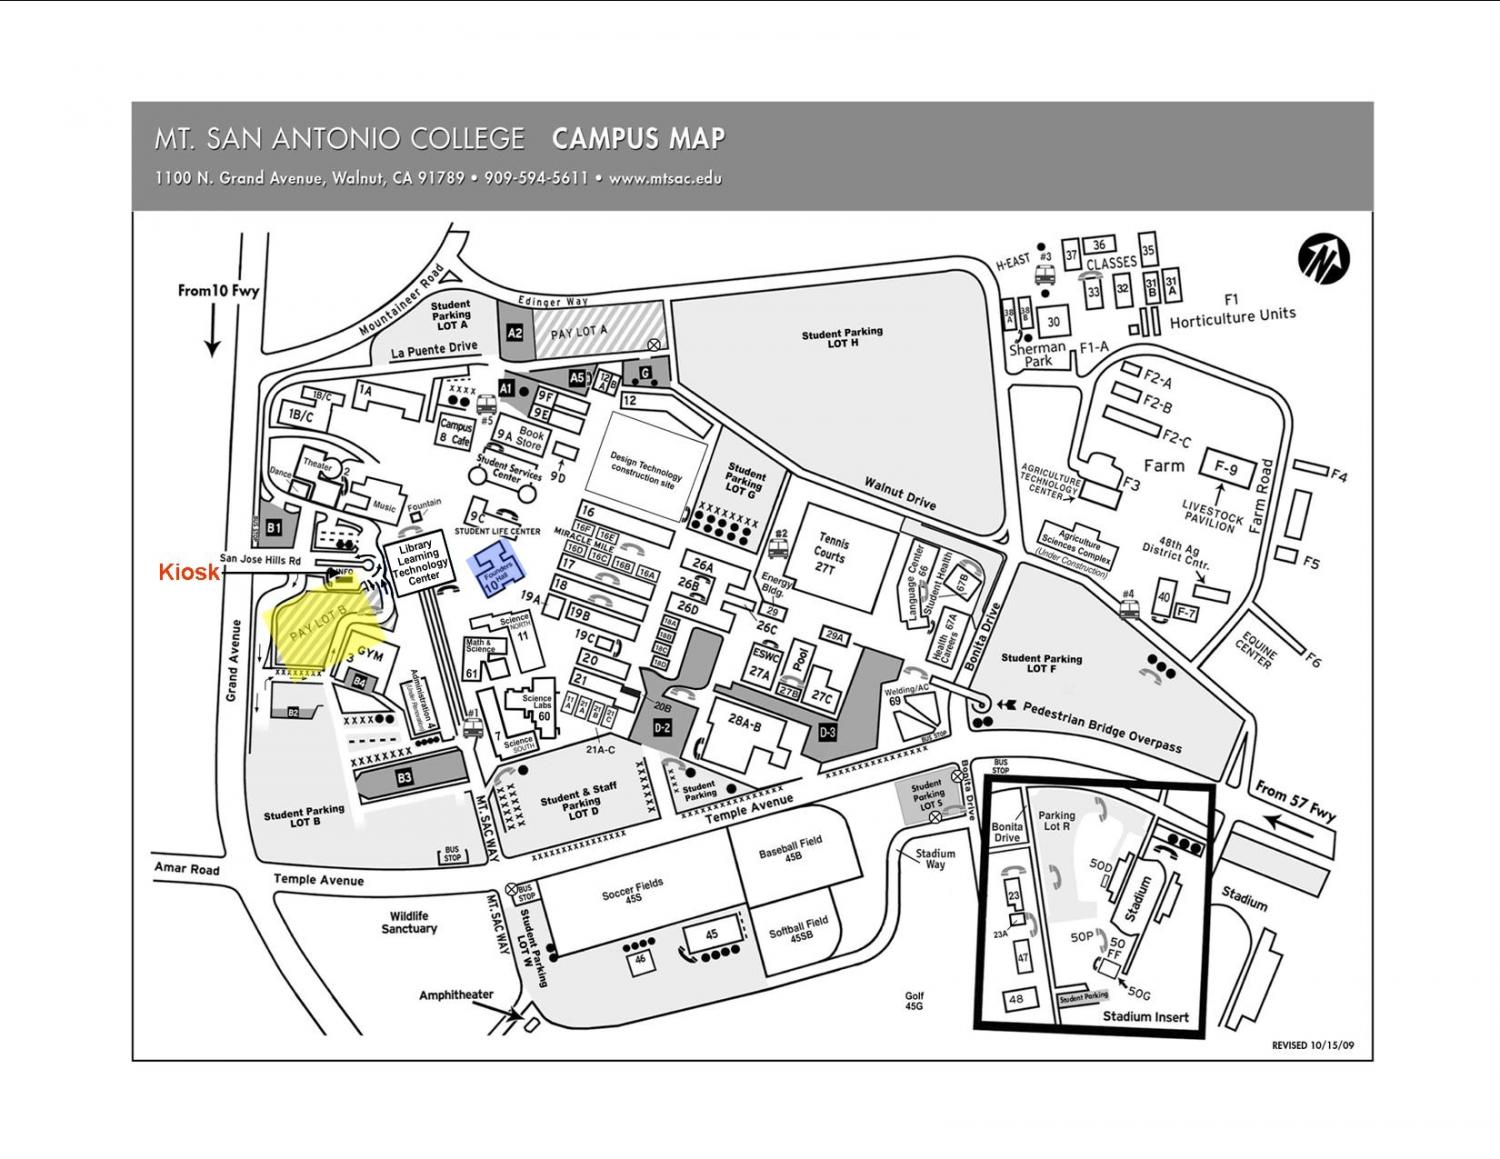 mt san antonio college campus map Parma Southern California Chapter Meeting Parma mt san antonio college campus map